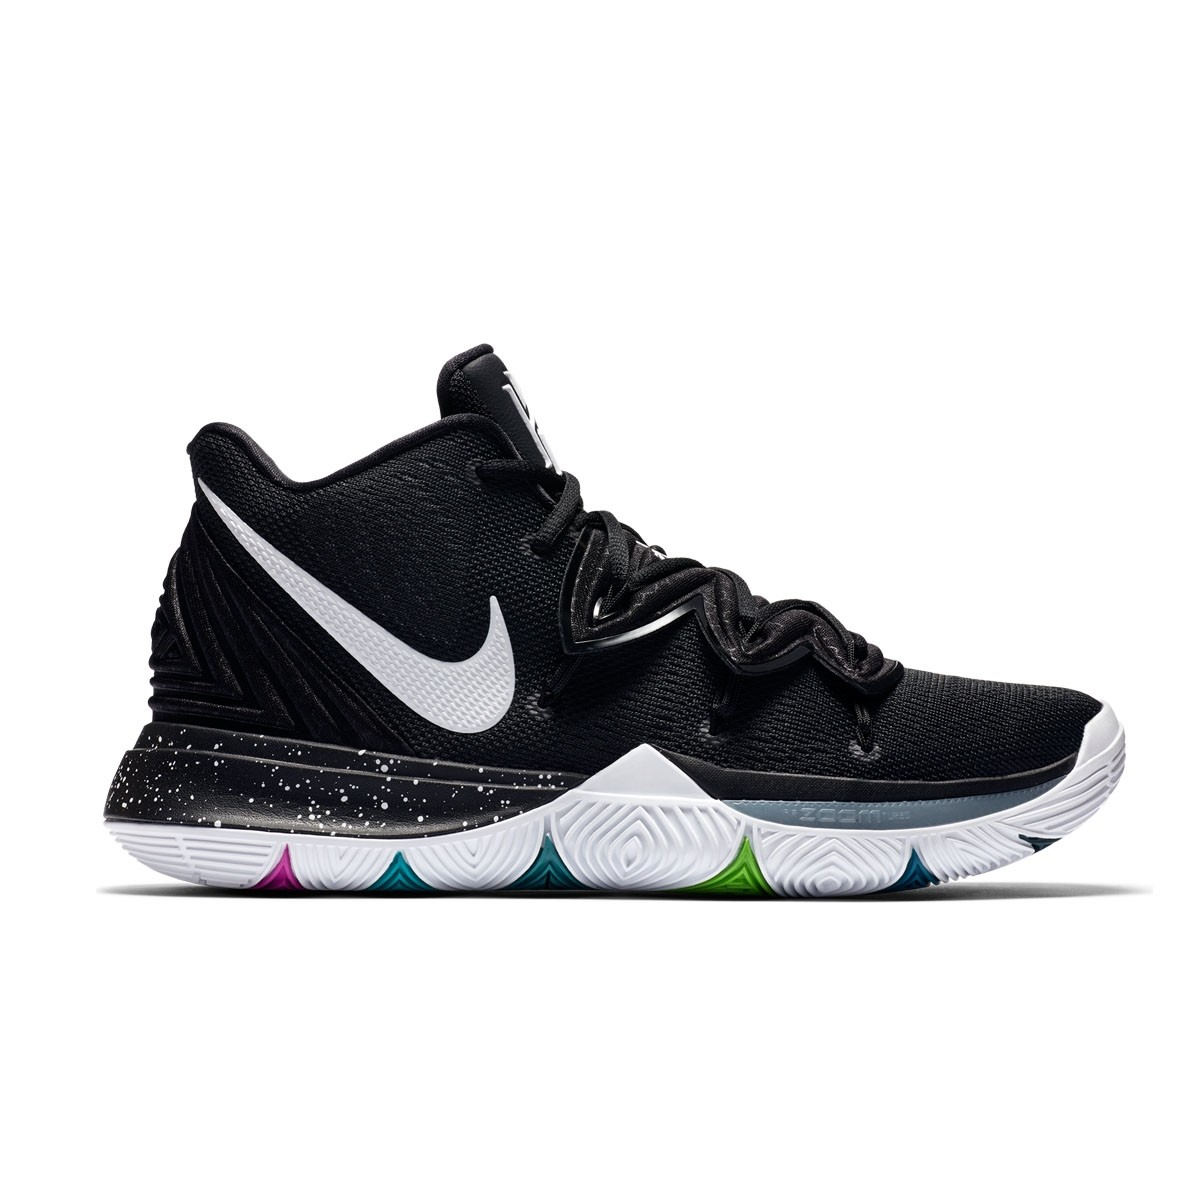 912f0aea8 Buy Nike Kyrie 5  Black Magic  Basketball shoes   sneakers